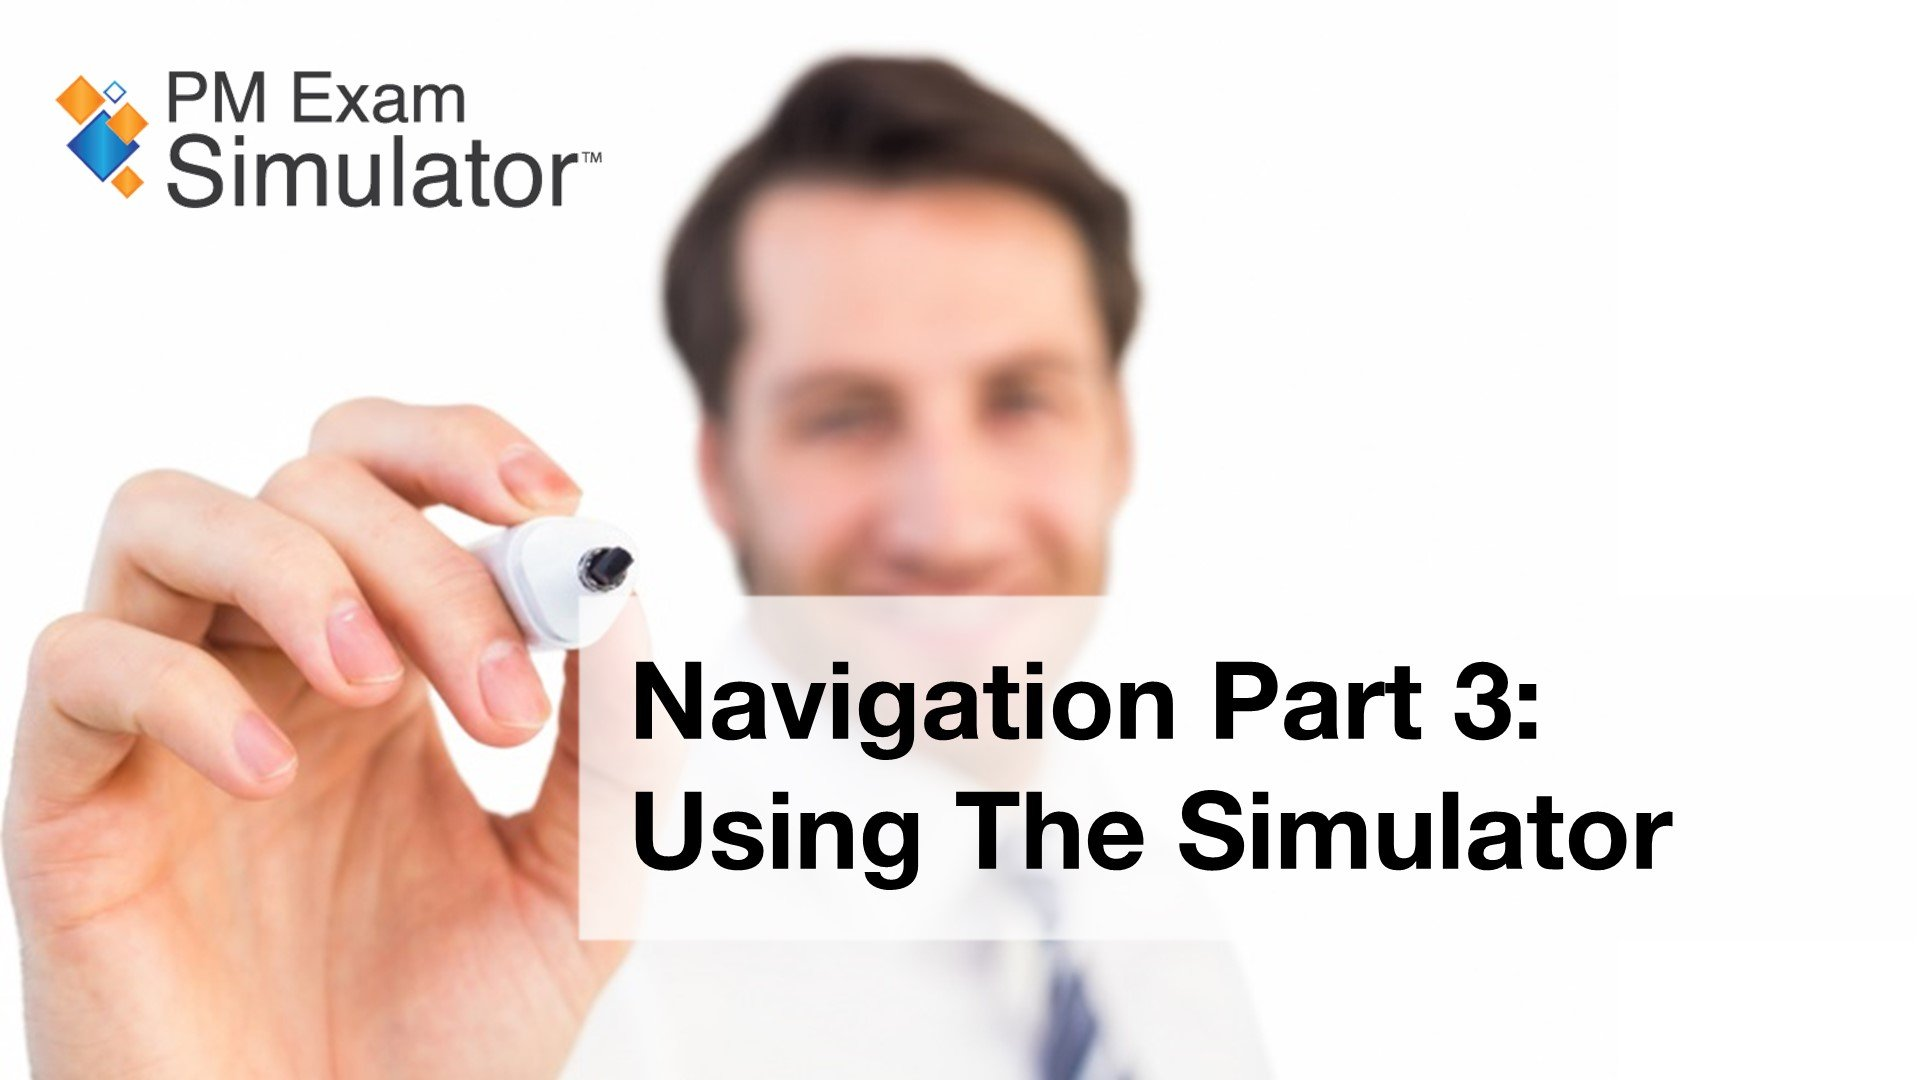 Navigation Part 3: Using The Simulator